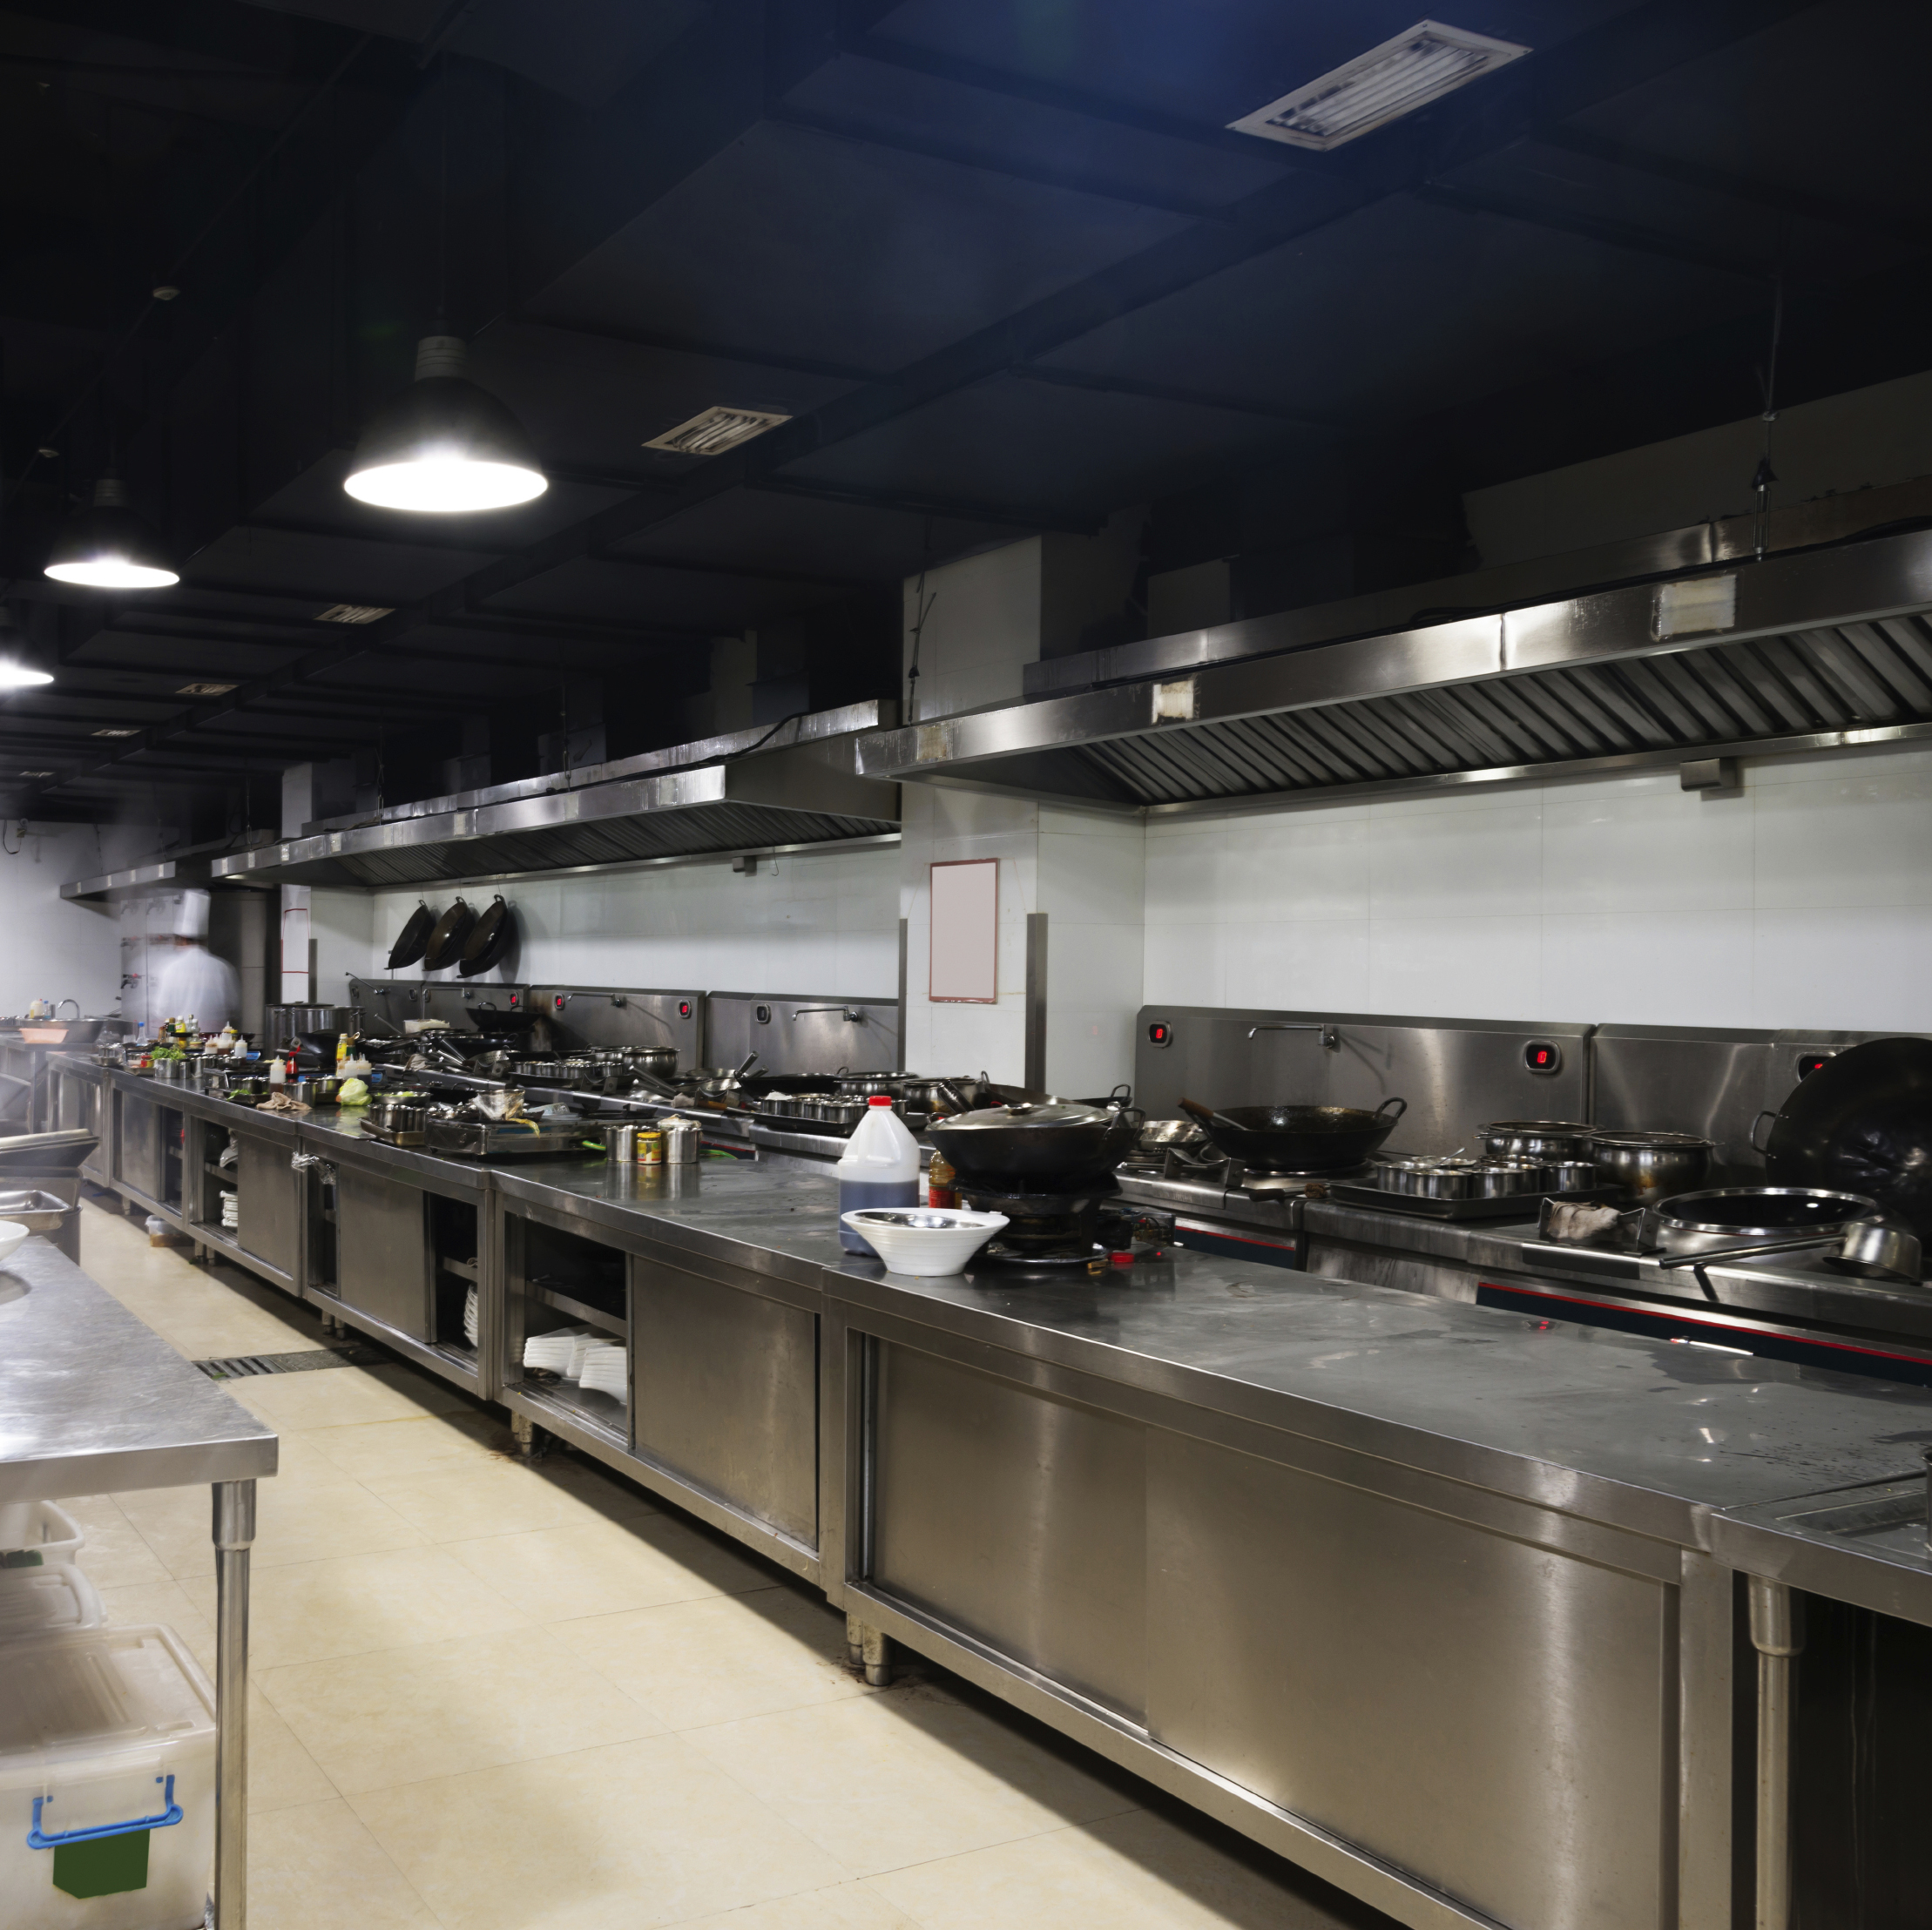 Tigerchef Offers Advice for Commercial Kitchen Equipment